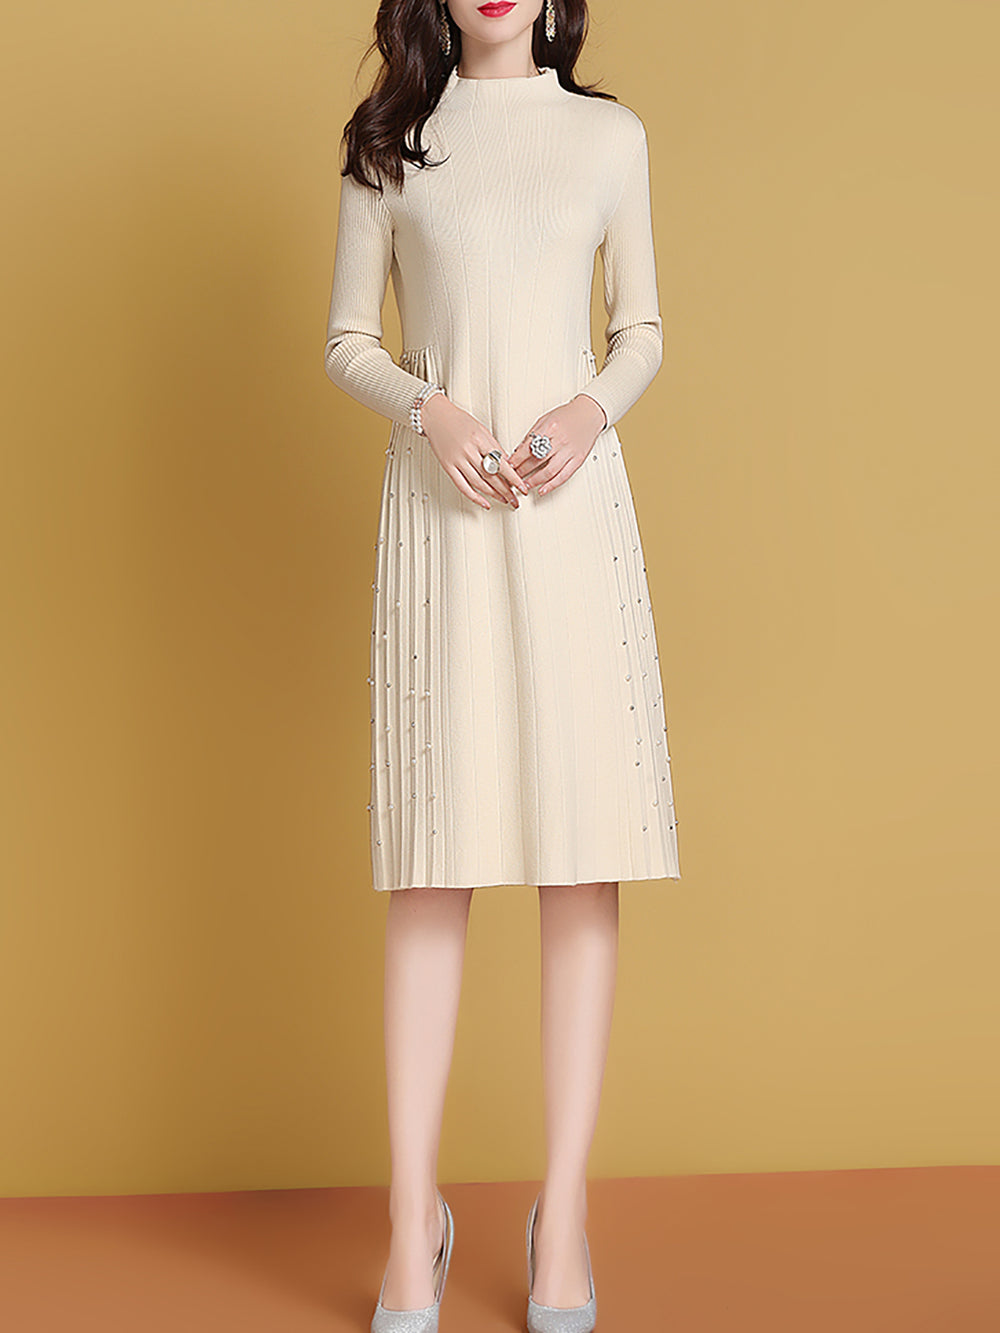 Winter Apricot Solid Knitted Casual Beaded Sweater Dress